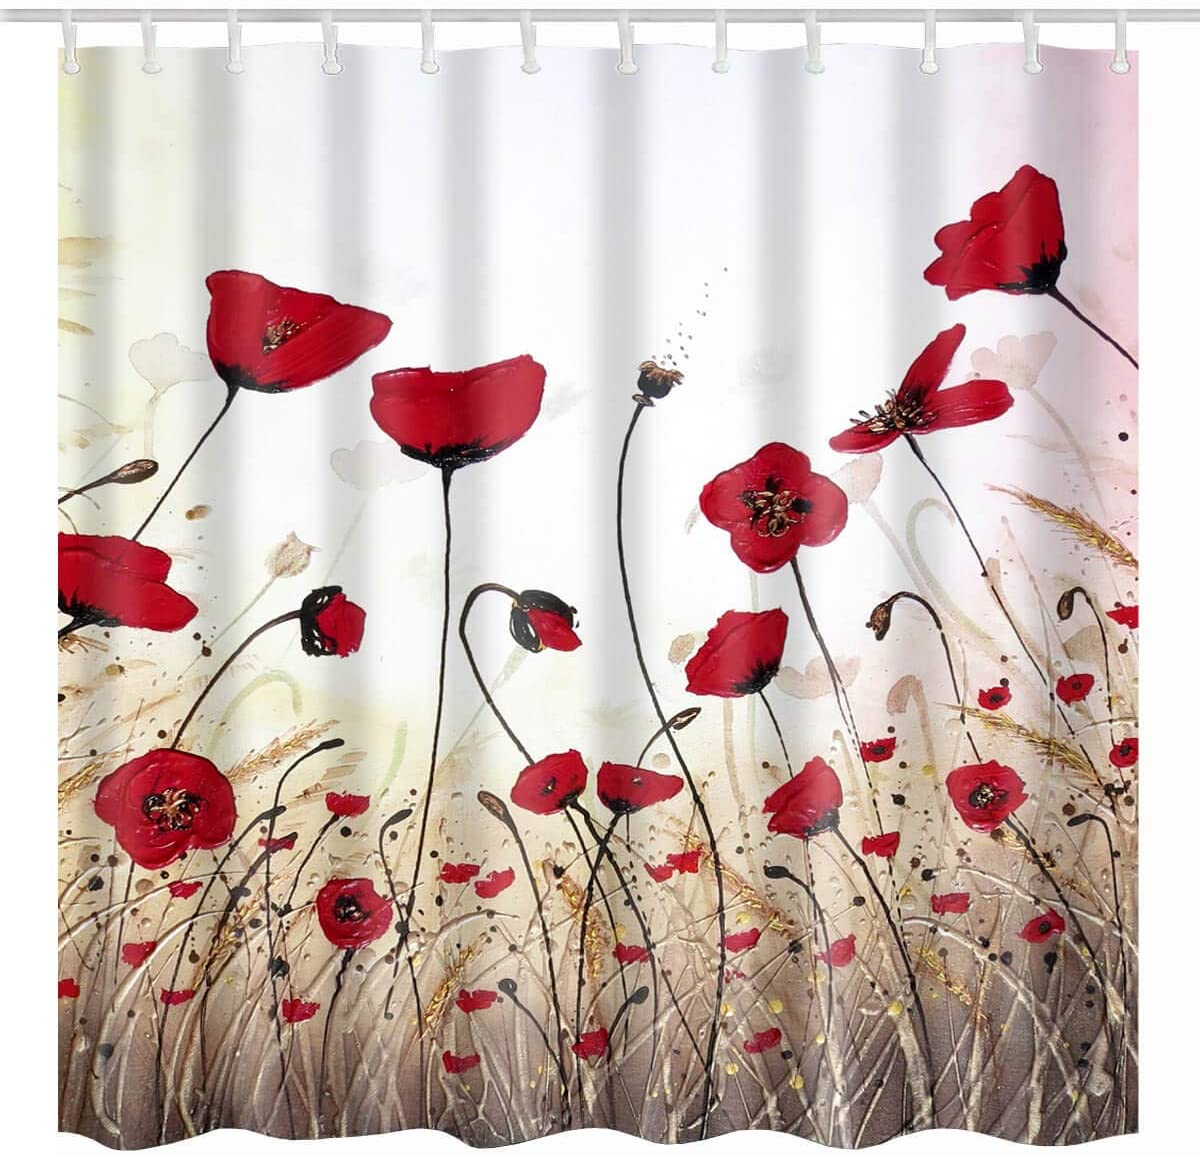 BROSHAN Vintage Shower Curtain Flower, Watercolor Red Poppy Flower Buds Petals Art Print, Retro Cloth Fabric Bathroom Decor Set with Hooks, 72 x 72 Inch